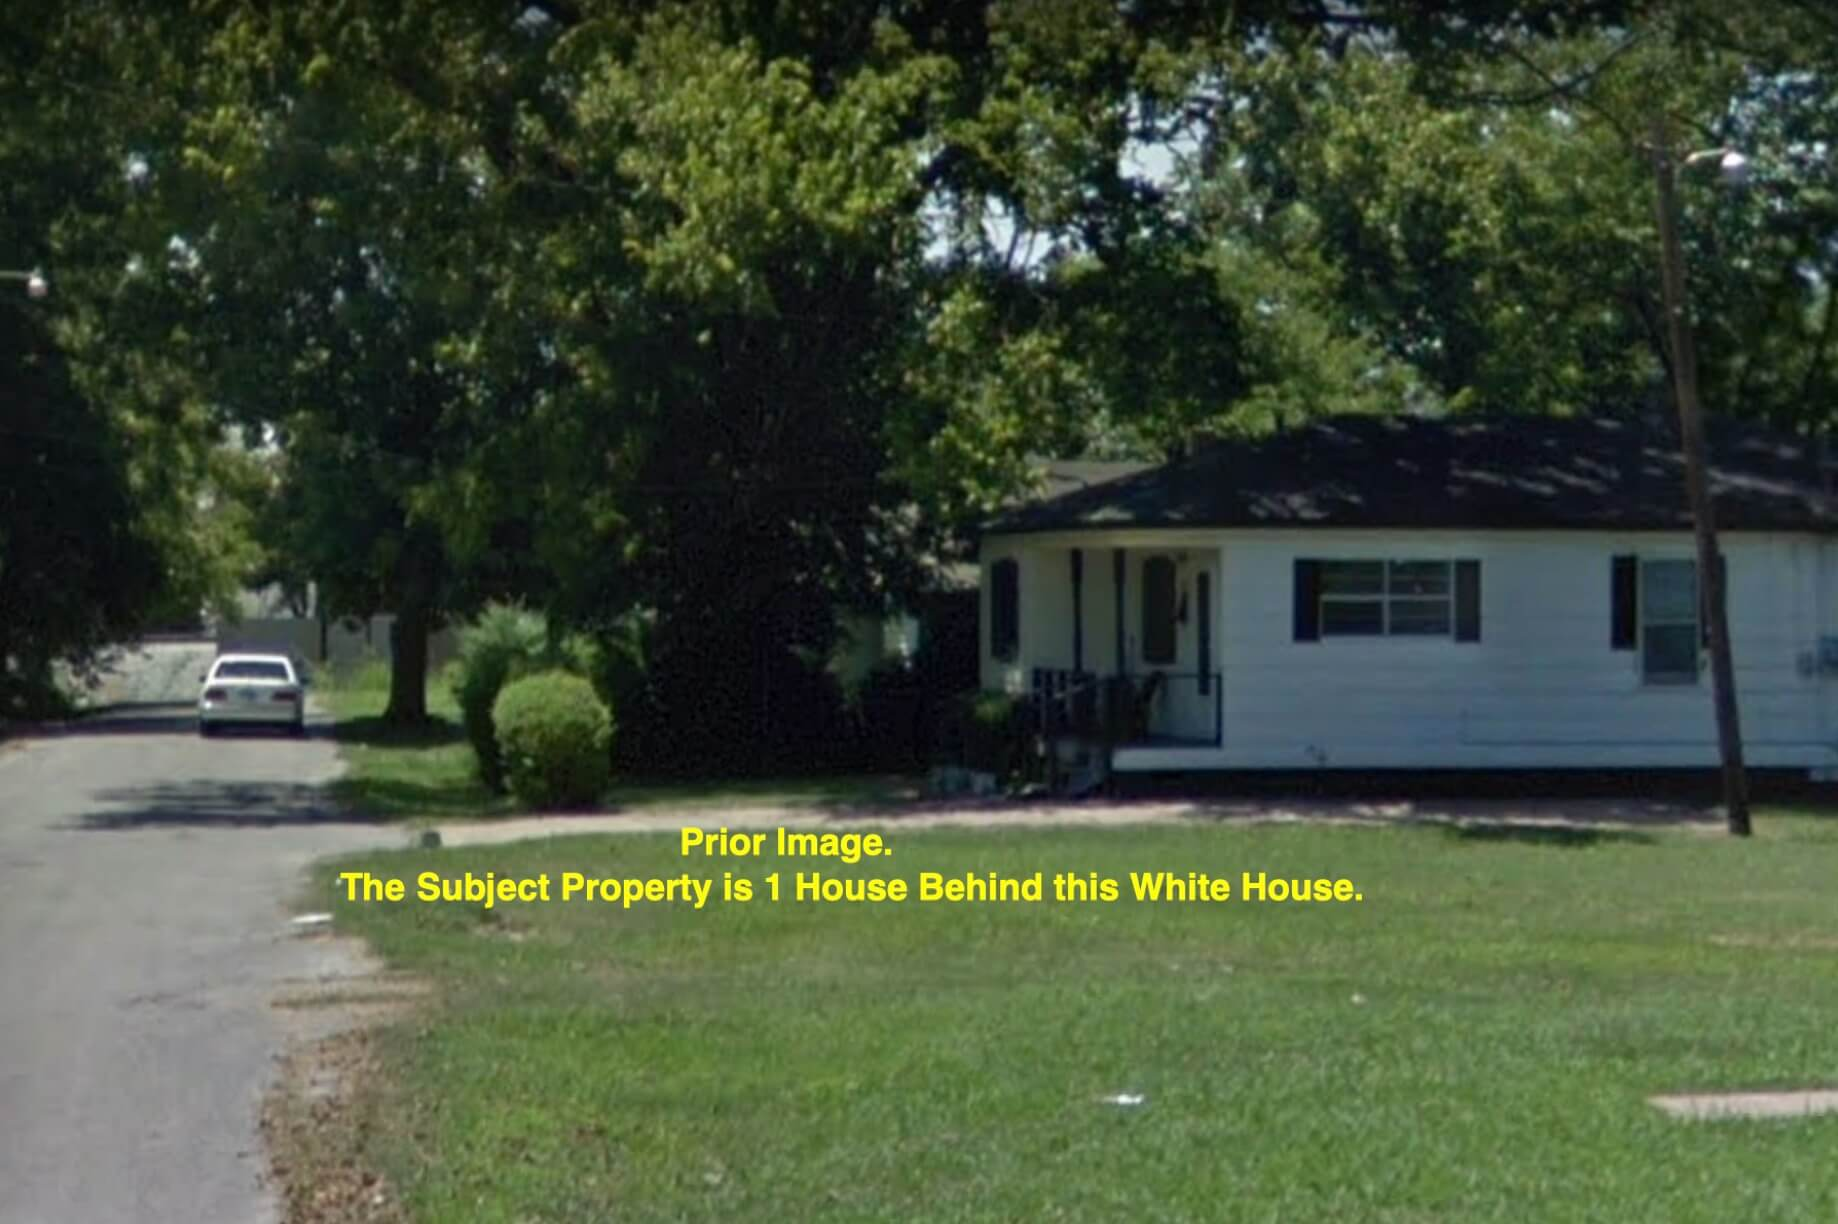 Trend of Property for Sale Near Me- Homes/Land- Property for Sale Near Me